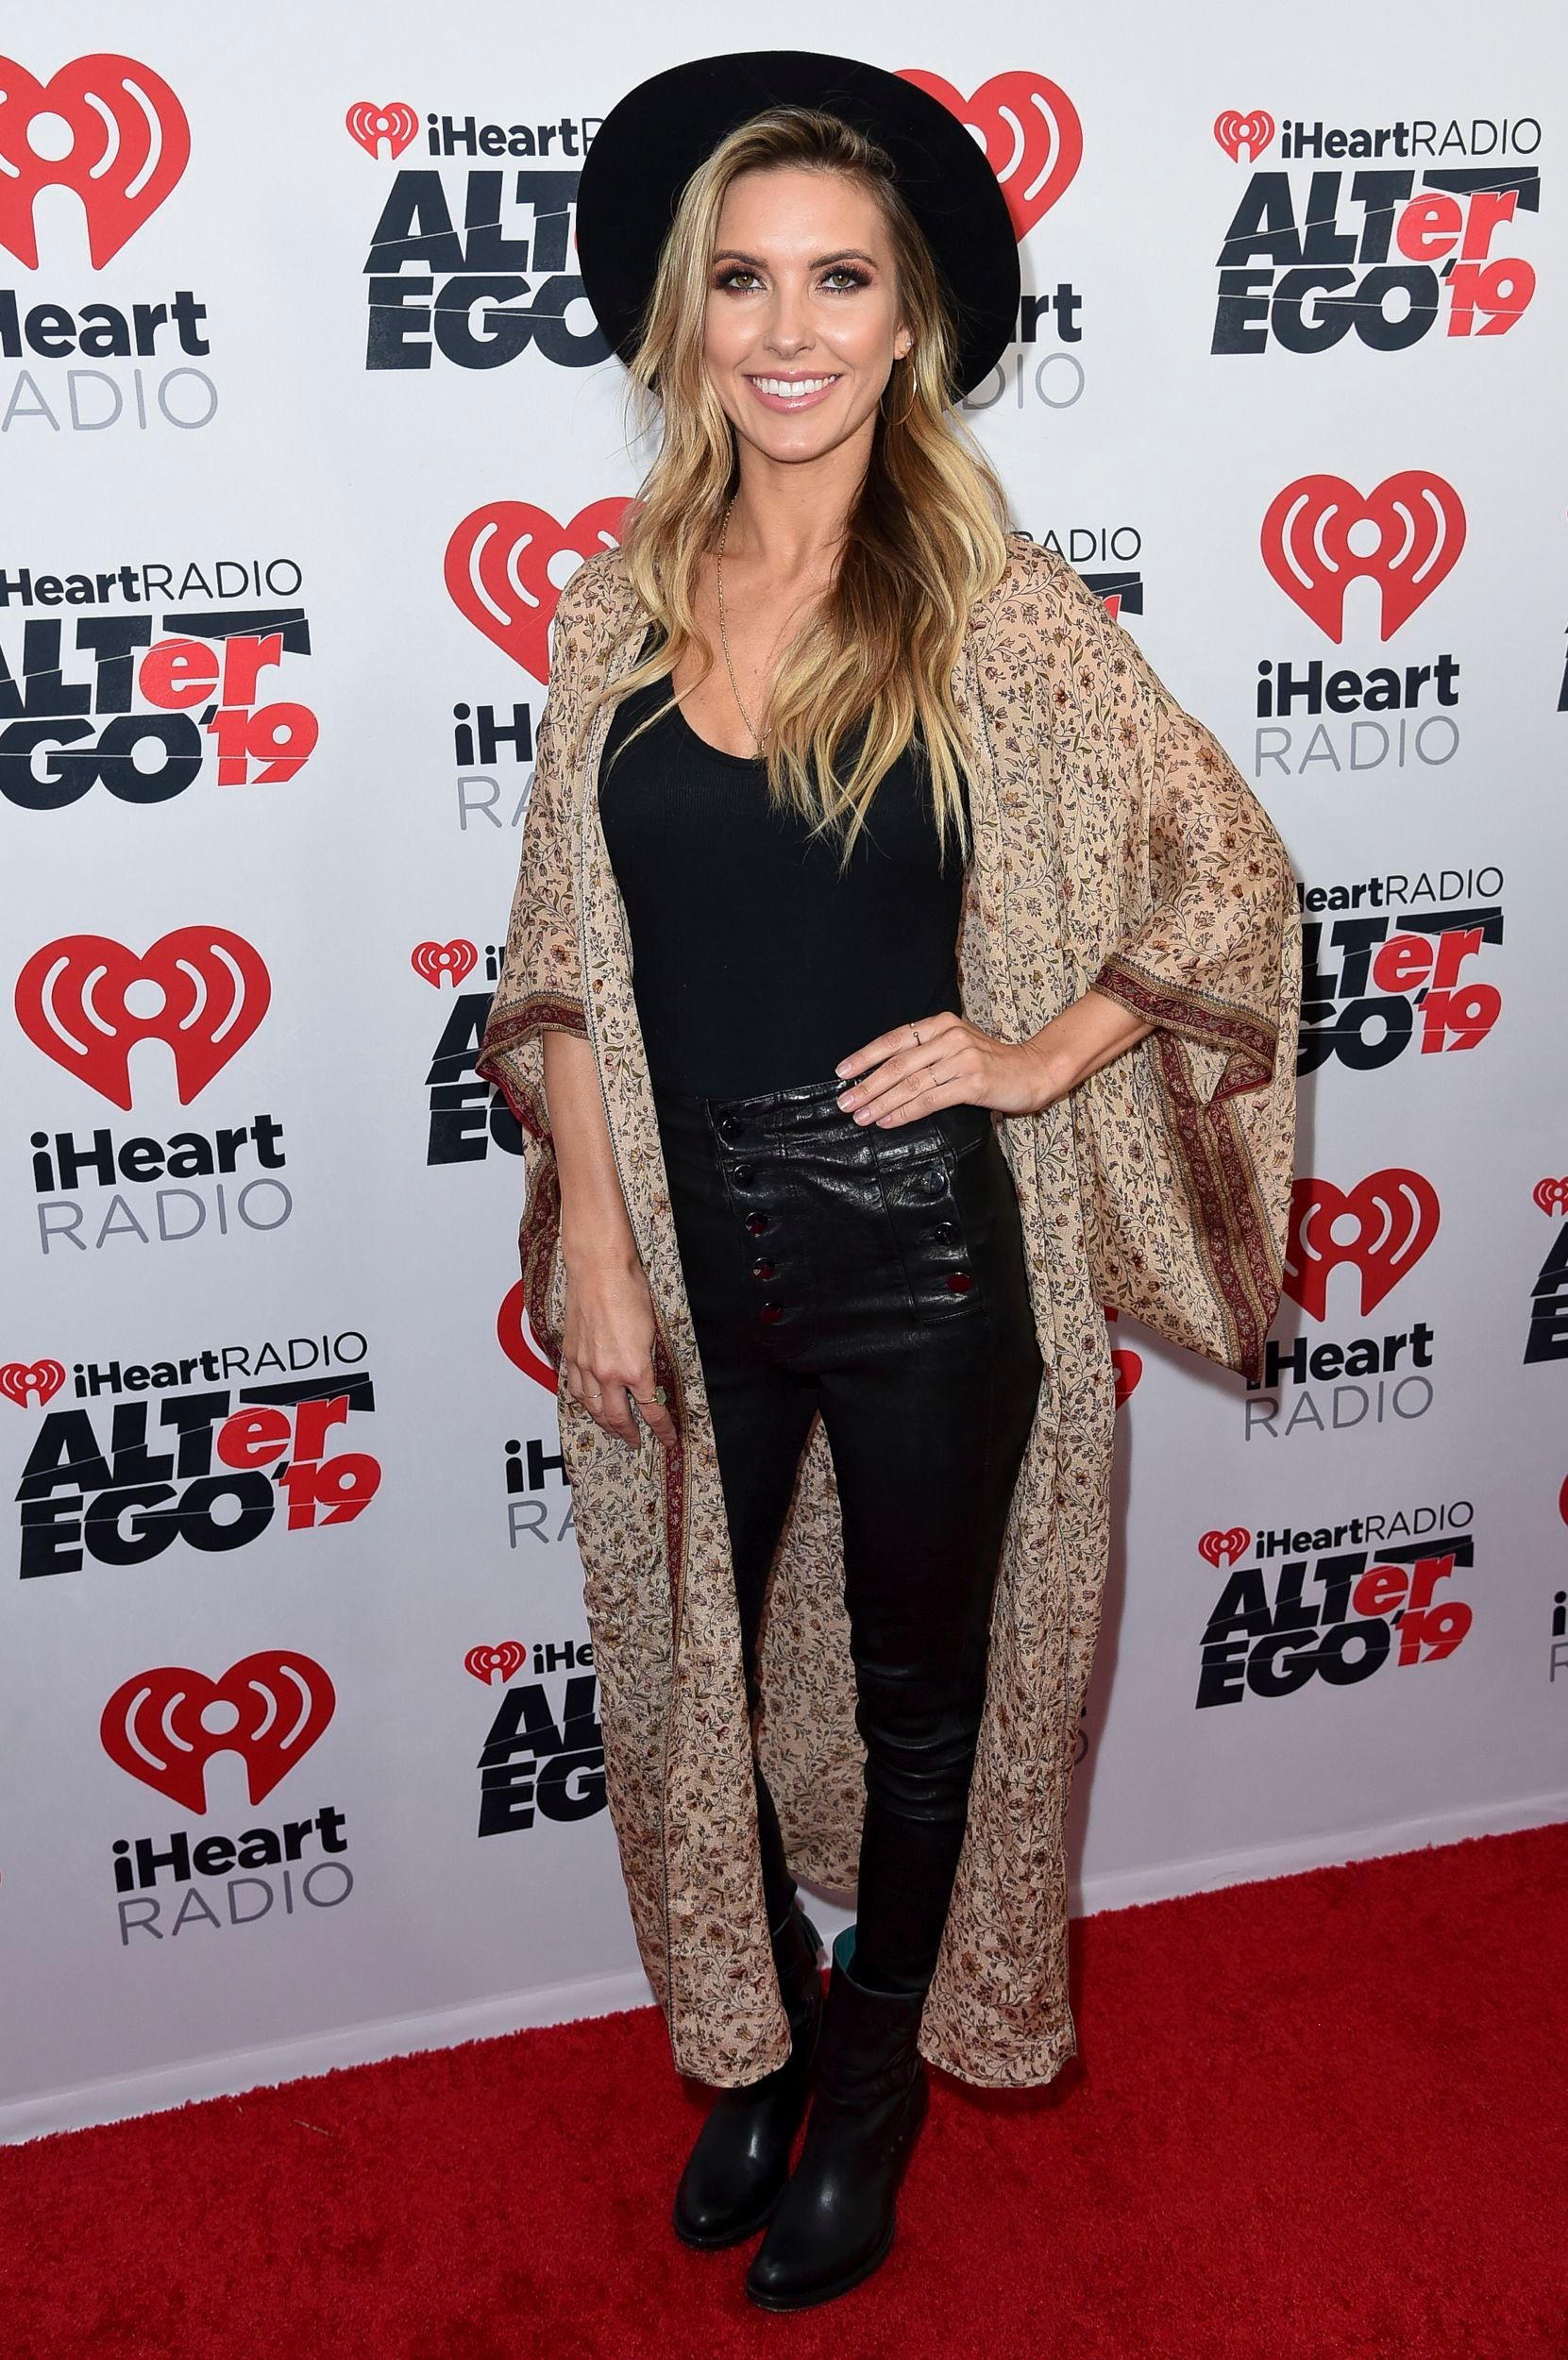 Audrina Patridge ttends the iHeartRadio ALTer EGO concert in Los Angeles on Jan. 19, 2018.